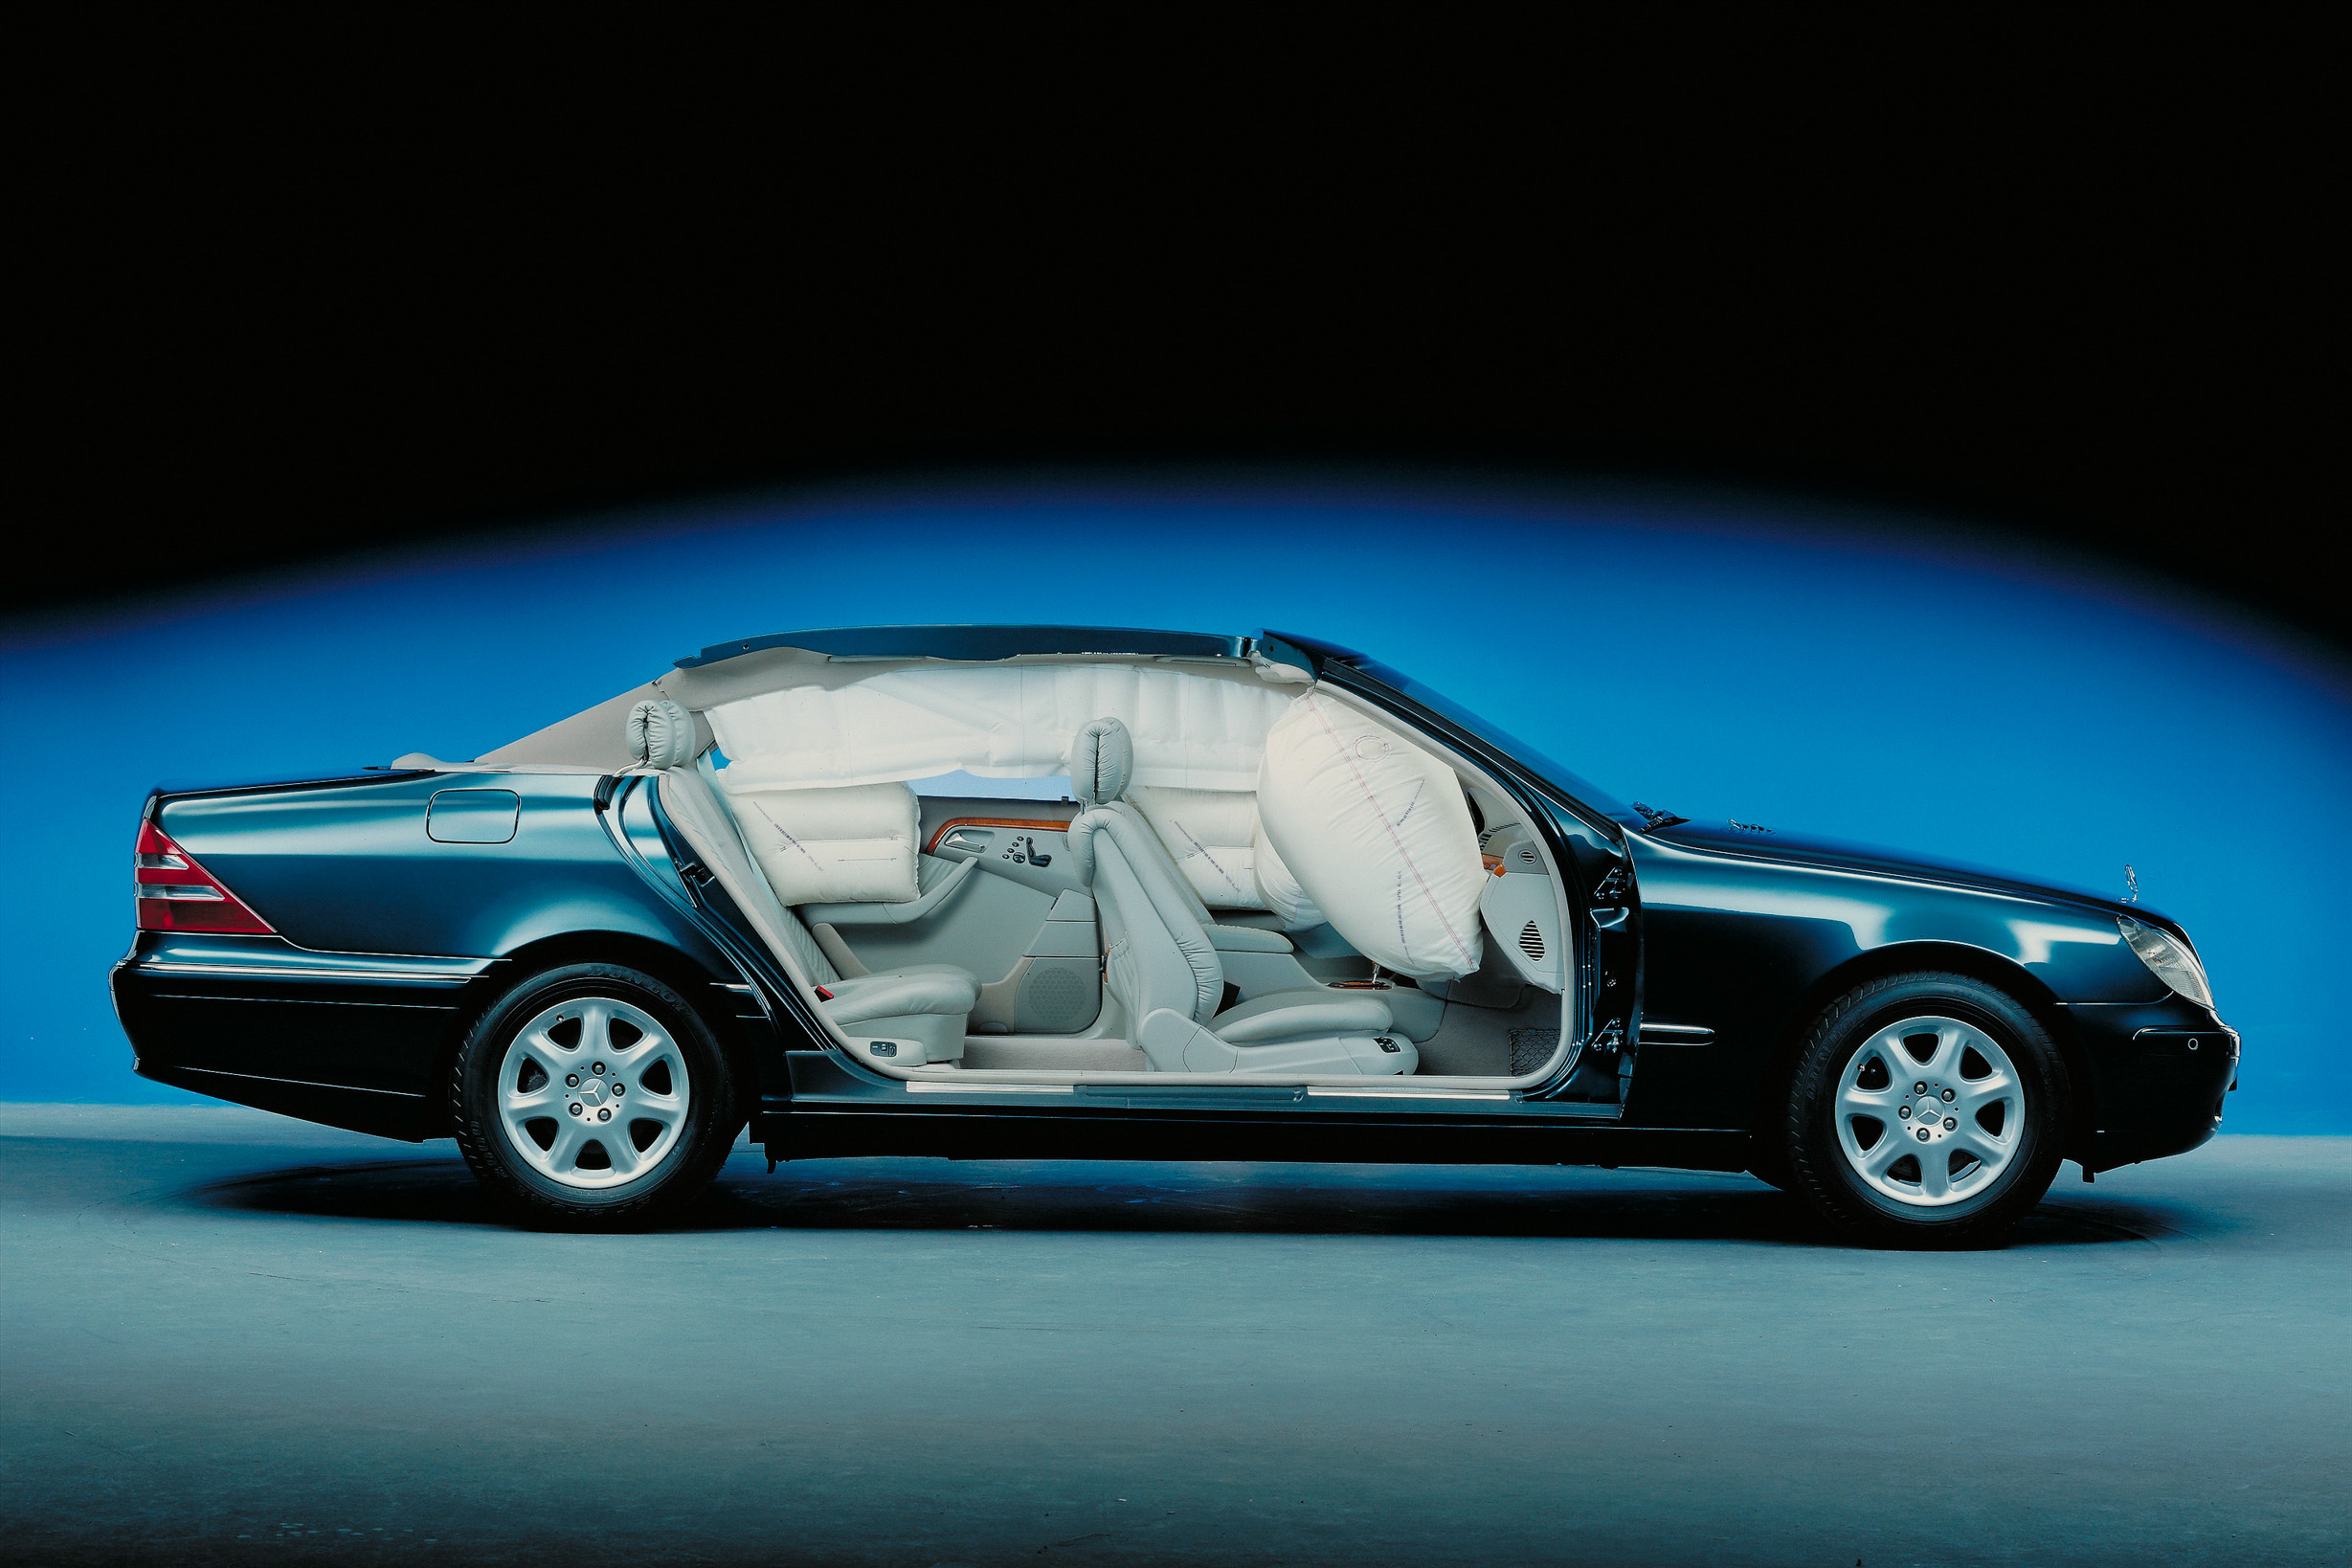 The Mercedes-Benz S-Class 220 made its debut in 1998 equipped with eight standard airbags including newly developed rear side window airbags.